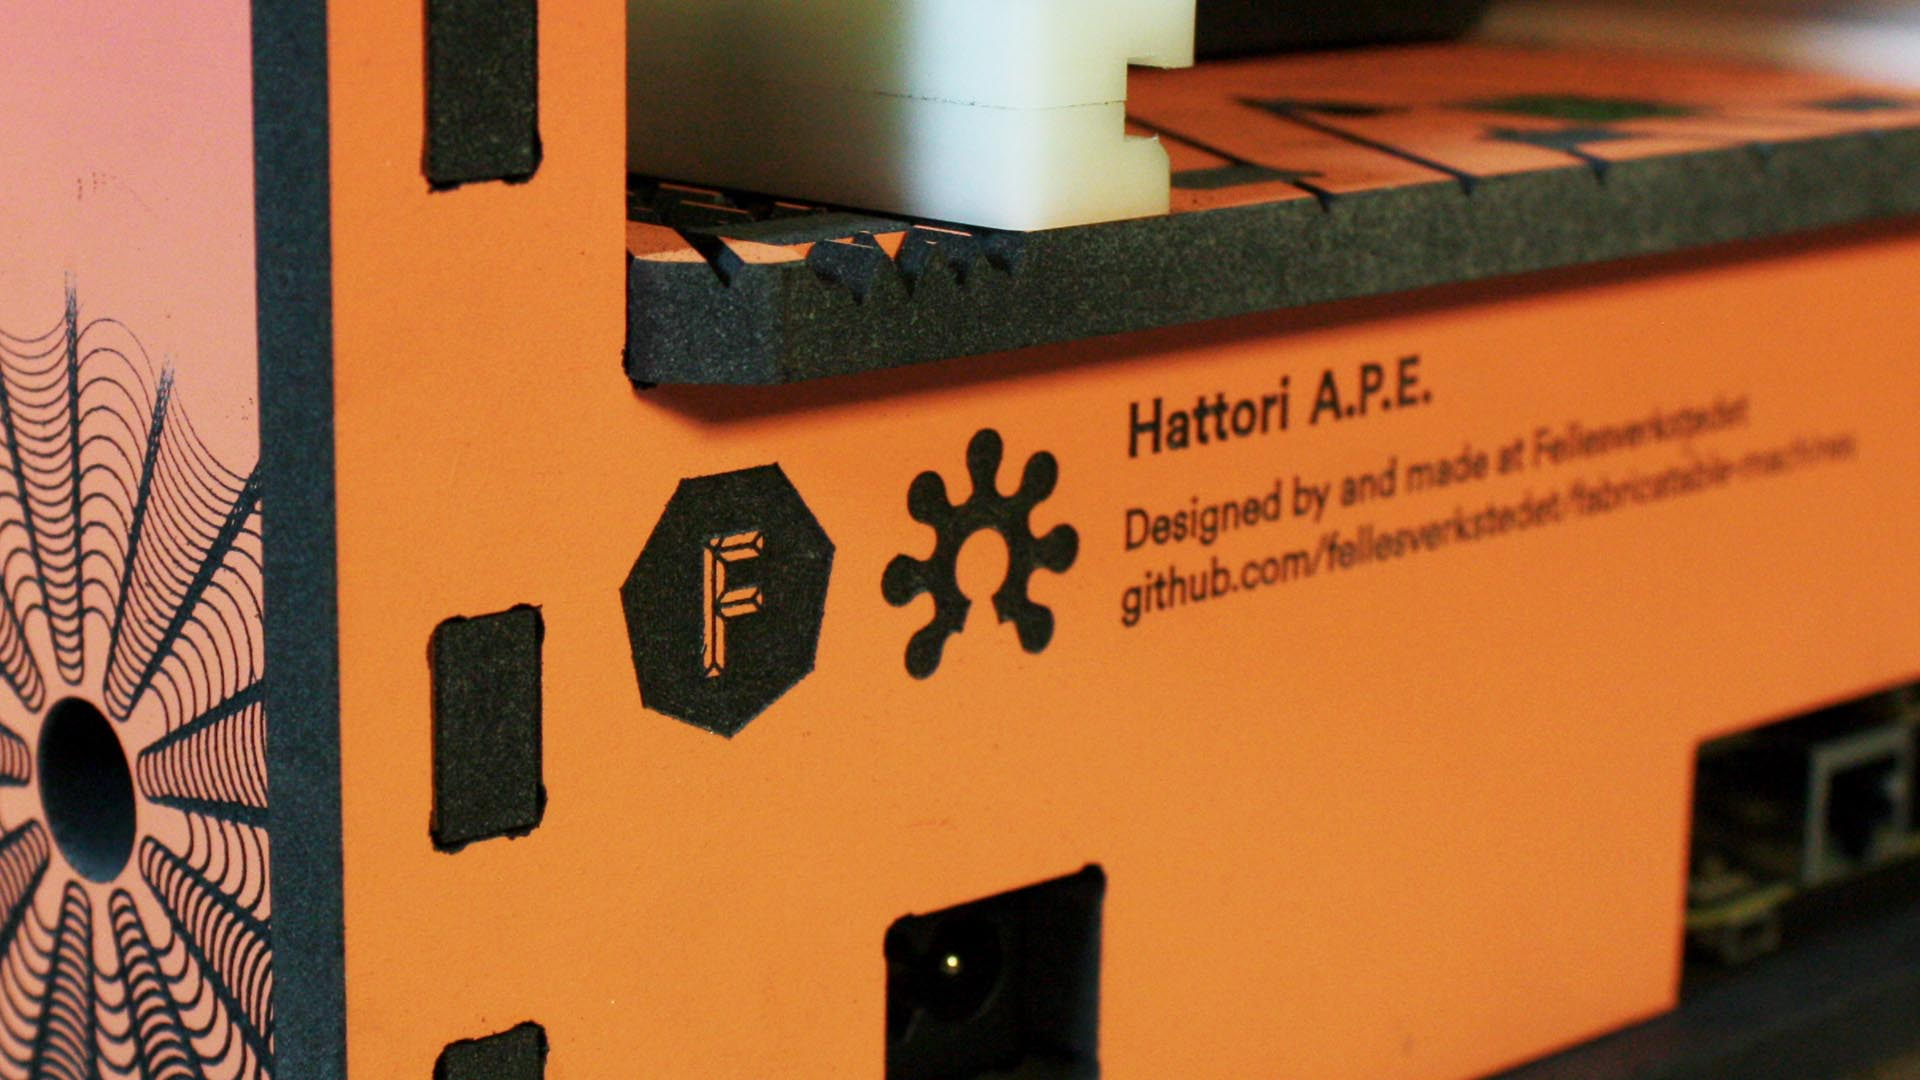 The open source hardware logo has been hacked to match the chamfer rail roller pinion